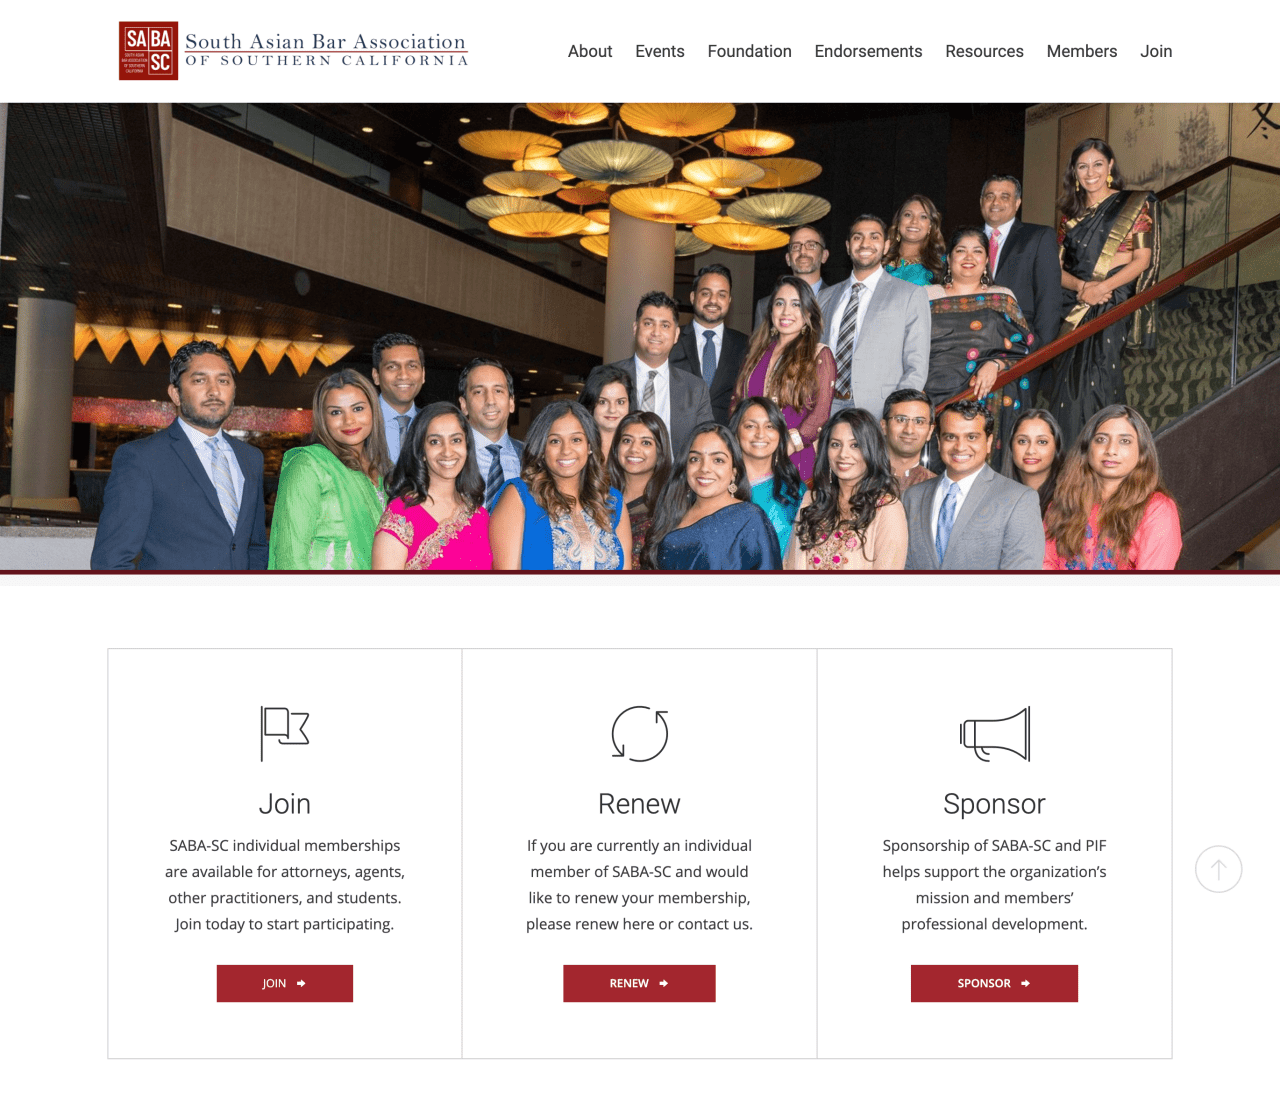 Legal services website design for South Asian Bar Association, Southern California chapter